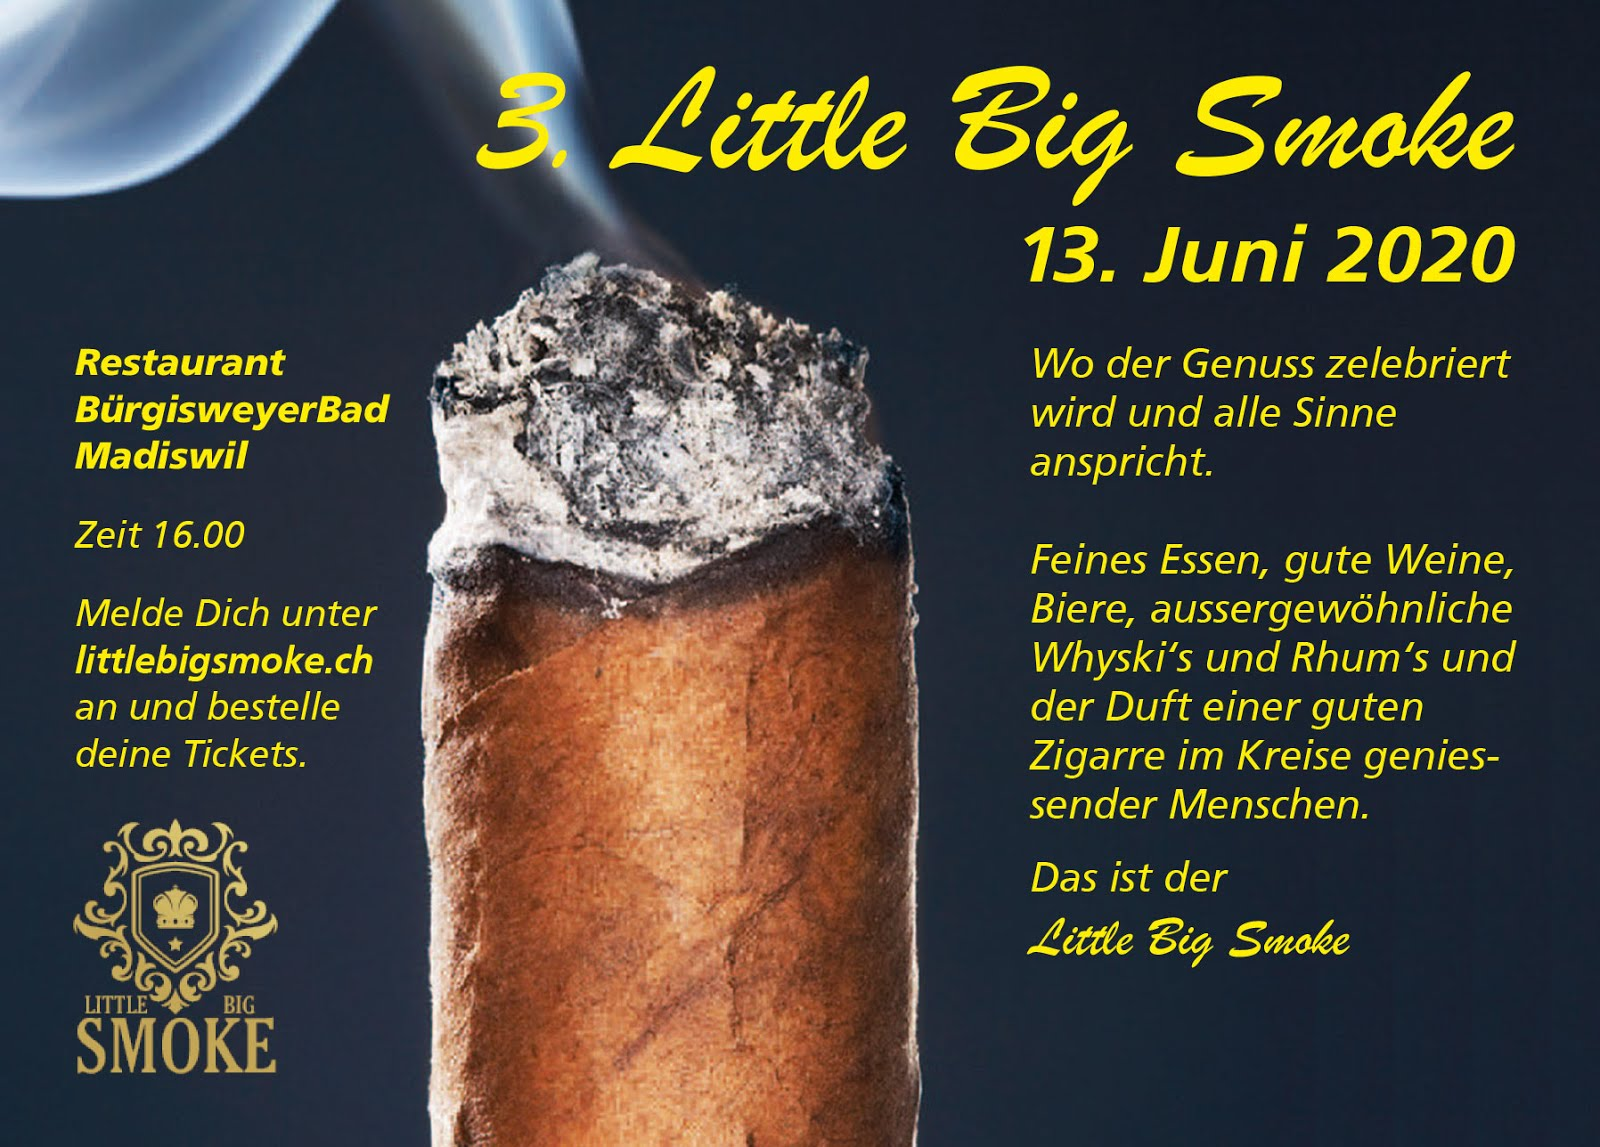 3. LITTLE BIG SMOKE